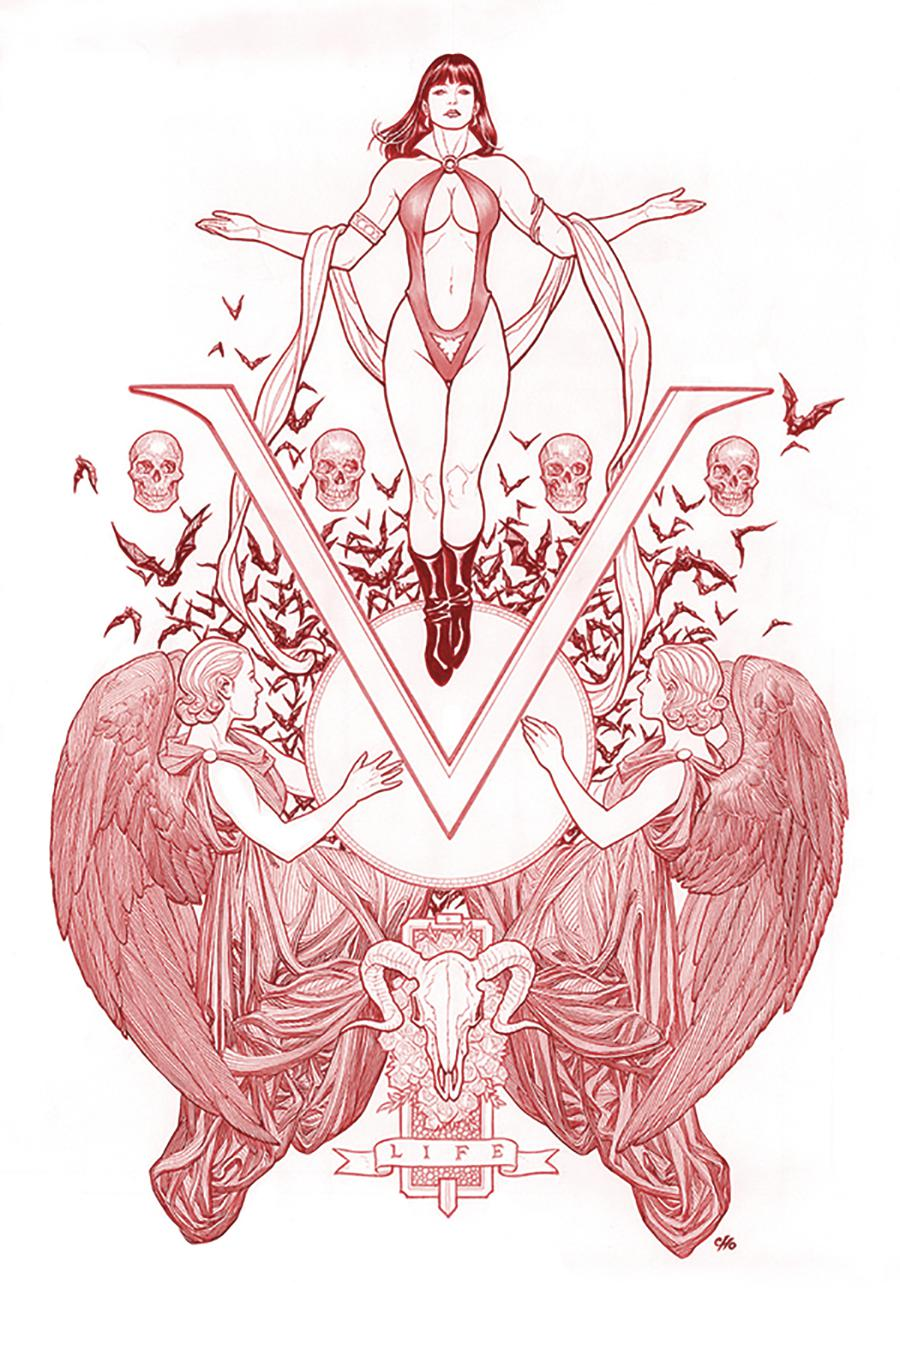 Vengeance Of Vampirella Vol 2 #1 Cover W Limited Edition Frank Cho Fiery Red Line Art Cover